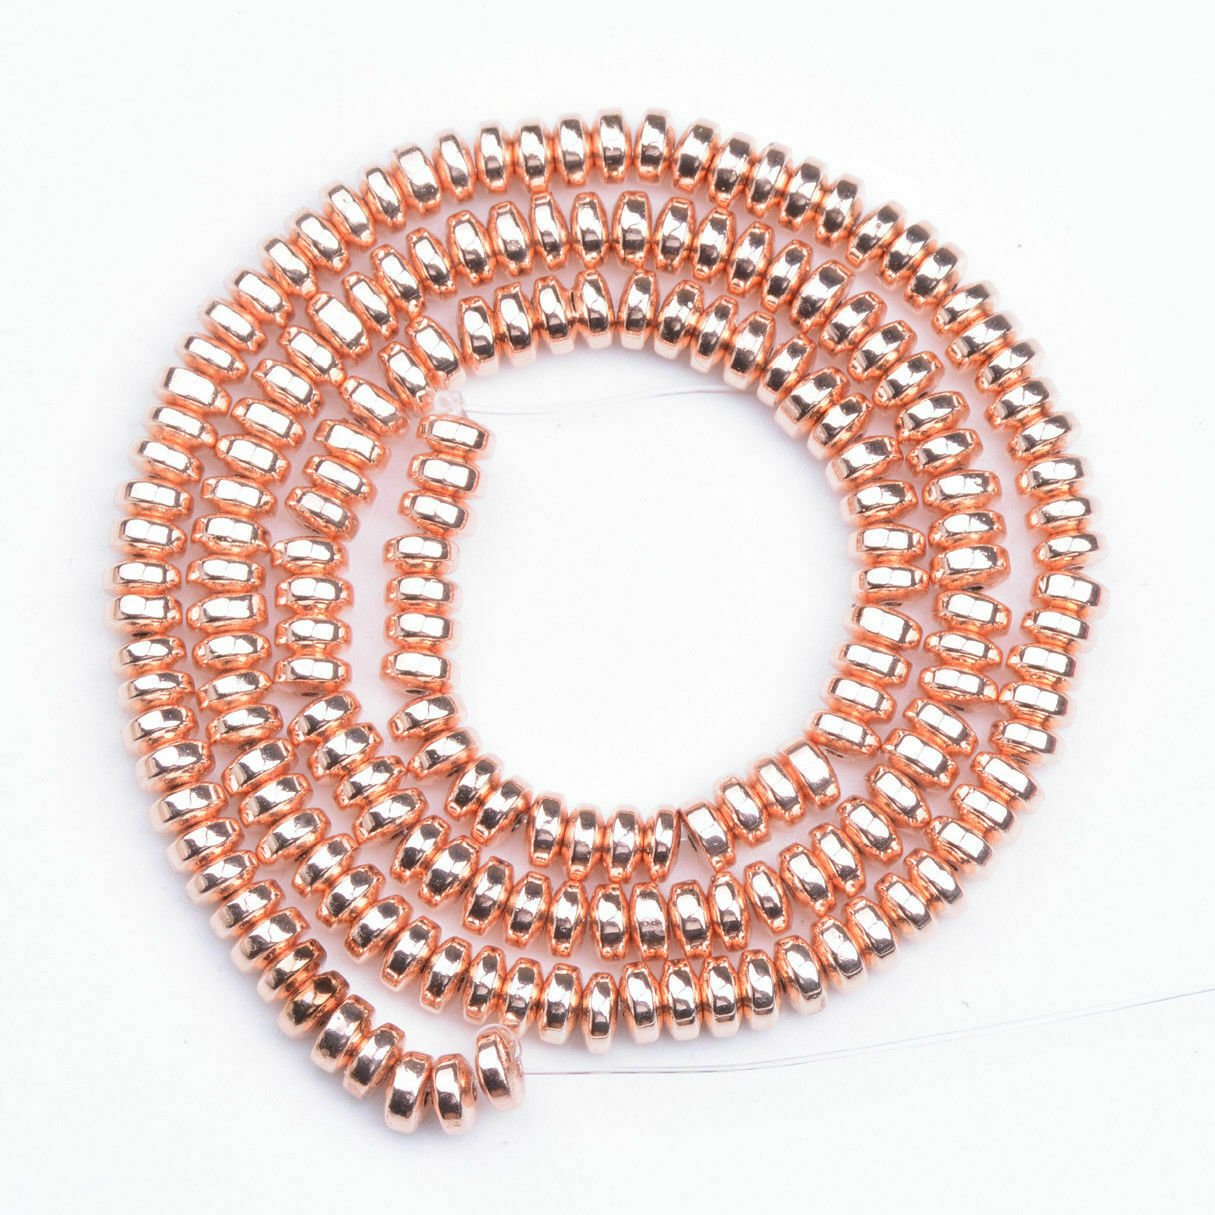 Rose Gold Plated Hematite Rondelle Loose Spacer Beads  8mm 15""